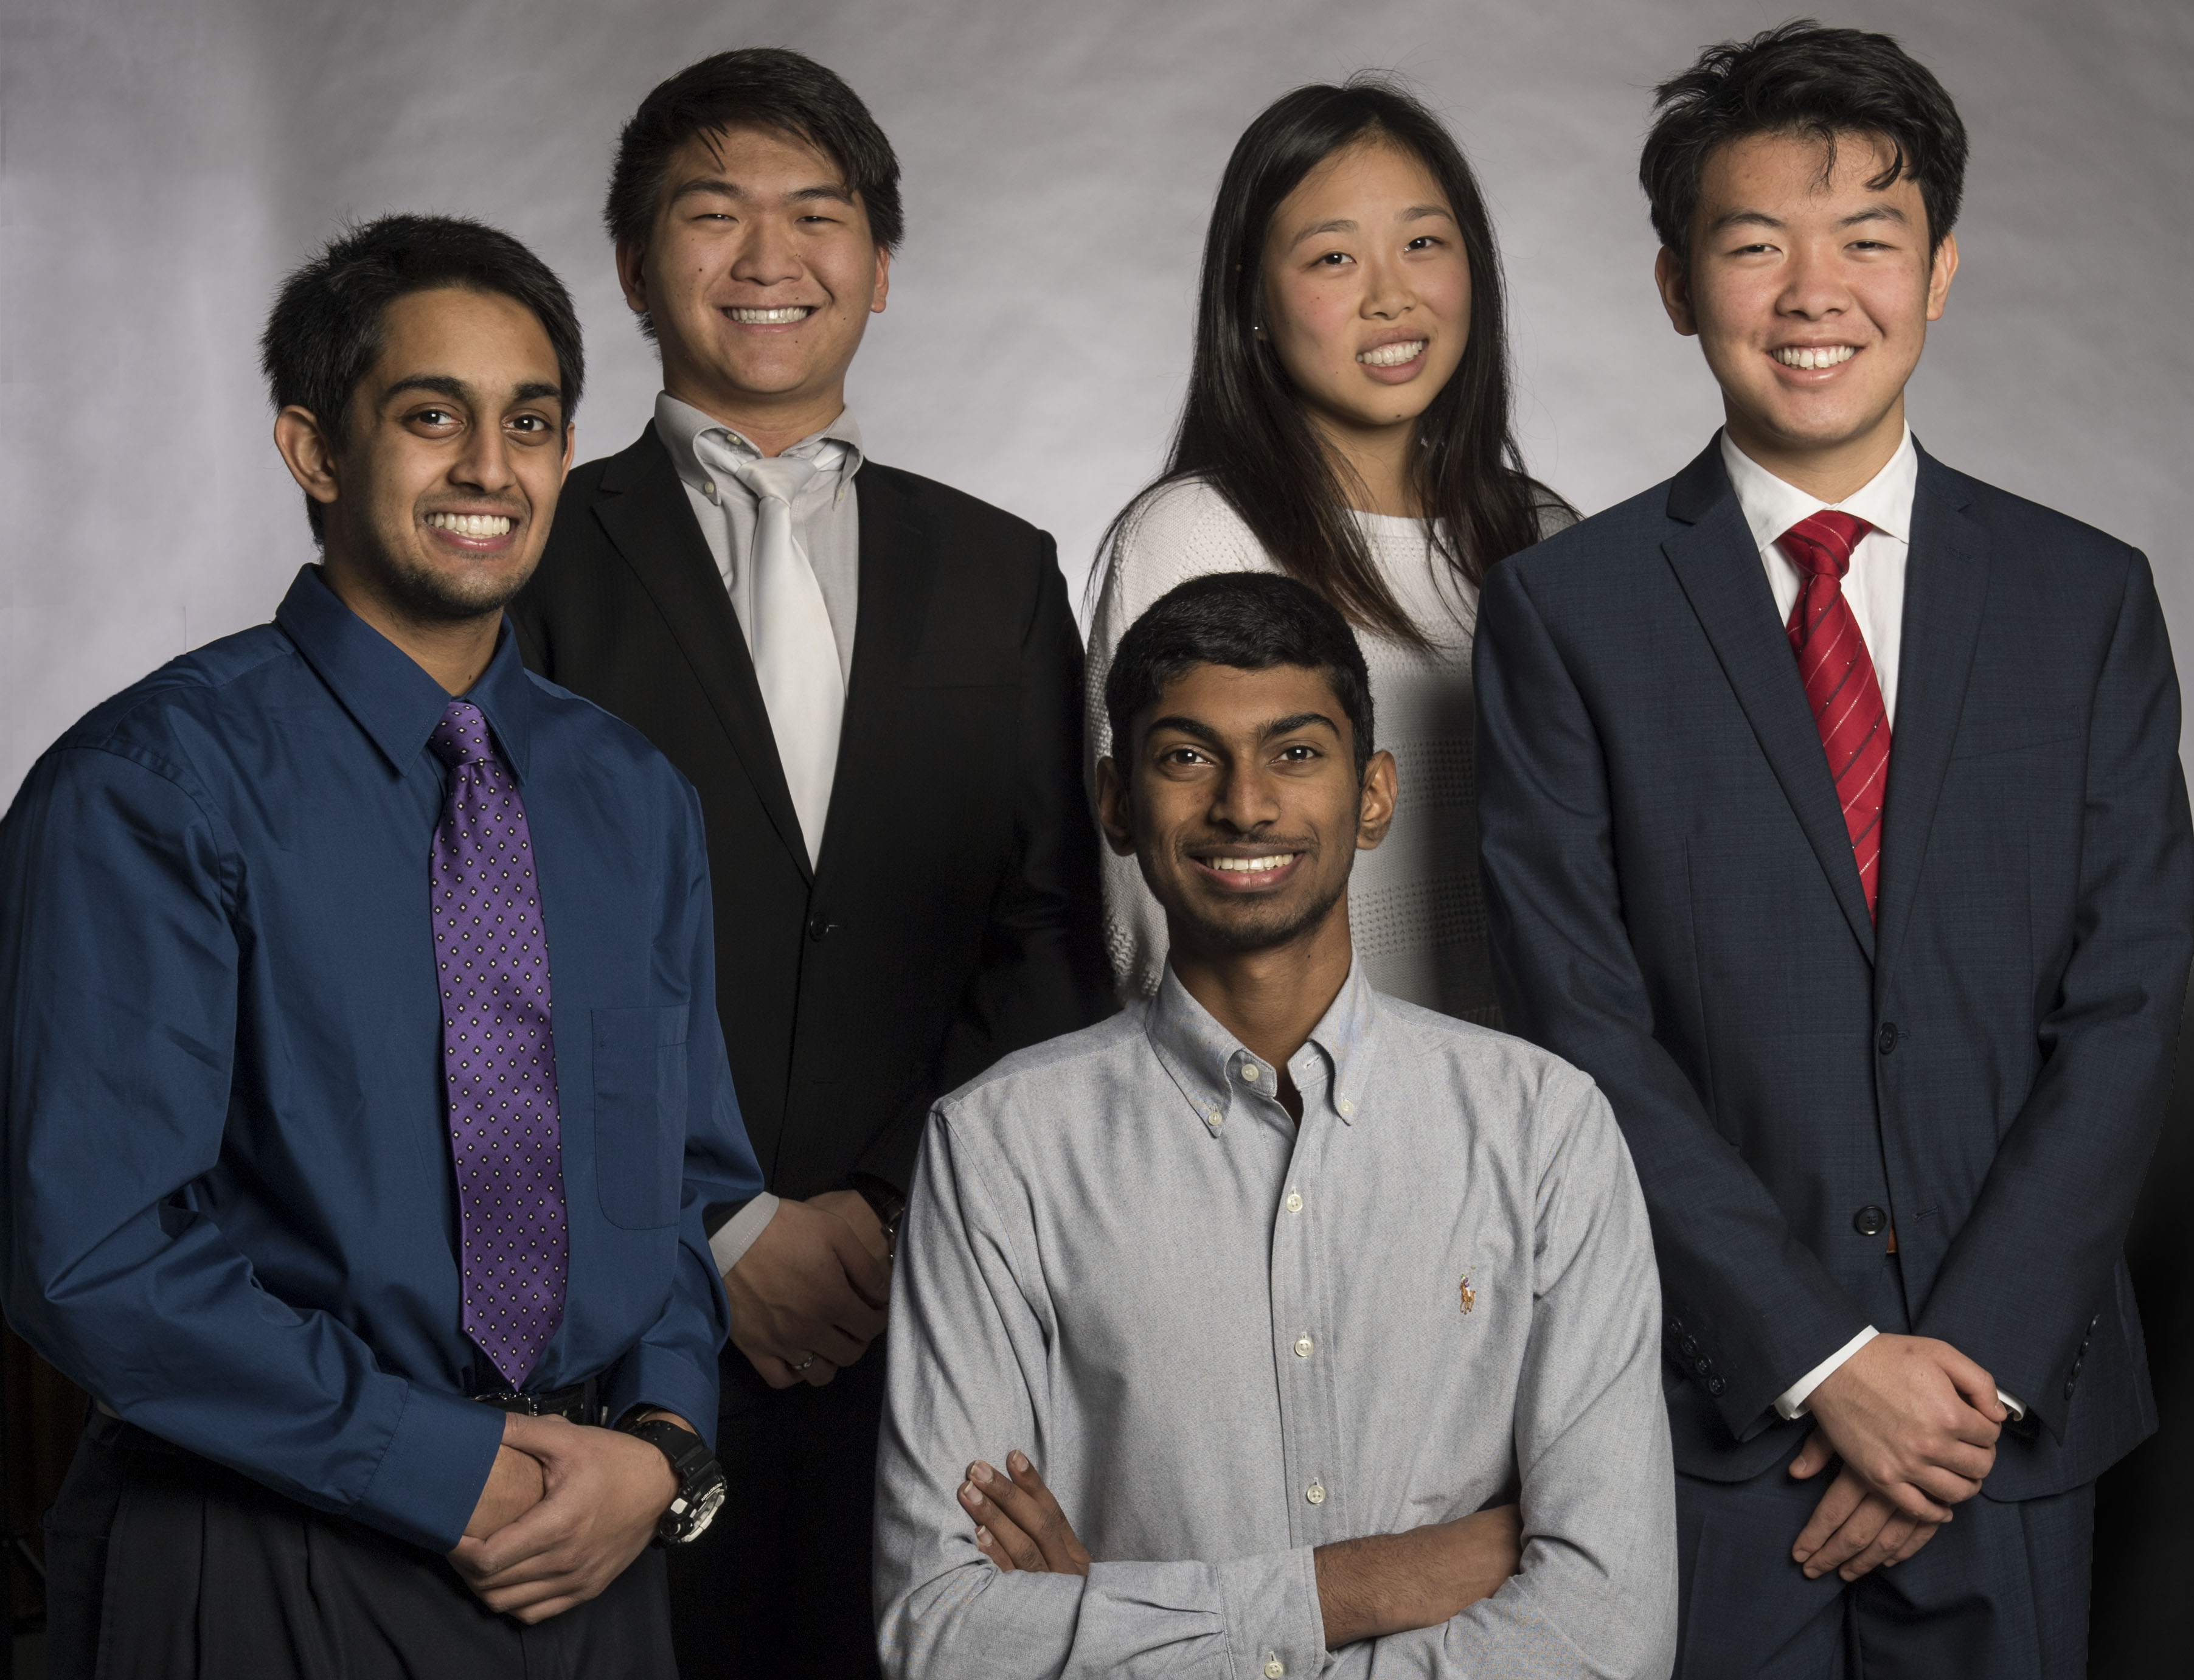 Five students from UNT's Texas Academy of Mathematics and Science were named semifinalists in the 2018 Regeneron Science Talent Search, which honors research of high school students. The students are (front row) Ashwin Kumar of Irving, Abhishek Mohan of Irving and Tan Yan of Coppell, and (back row) Ted Zhao of Arlington and Sarah Zou of Sugar Land.